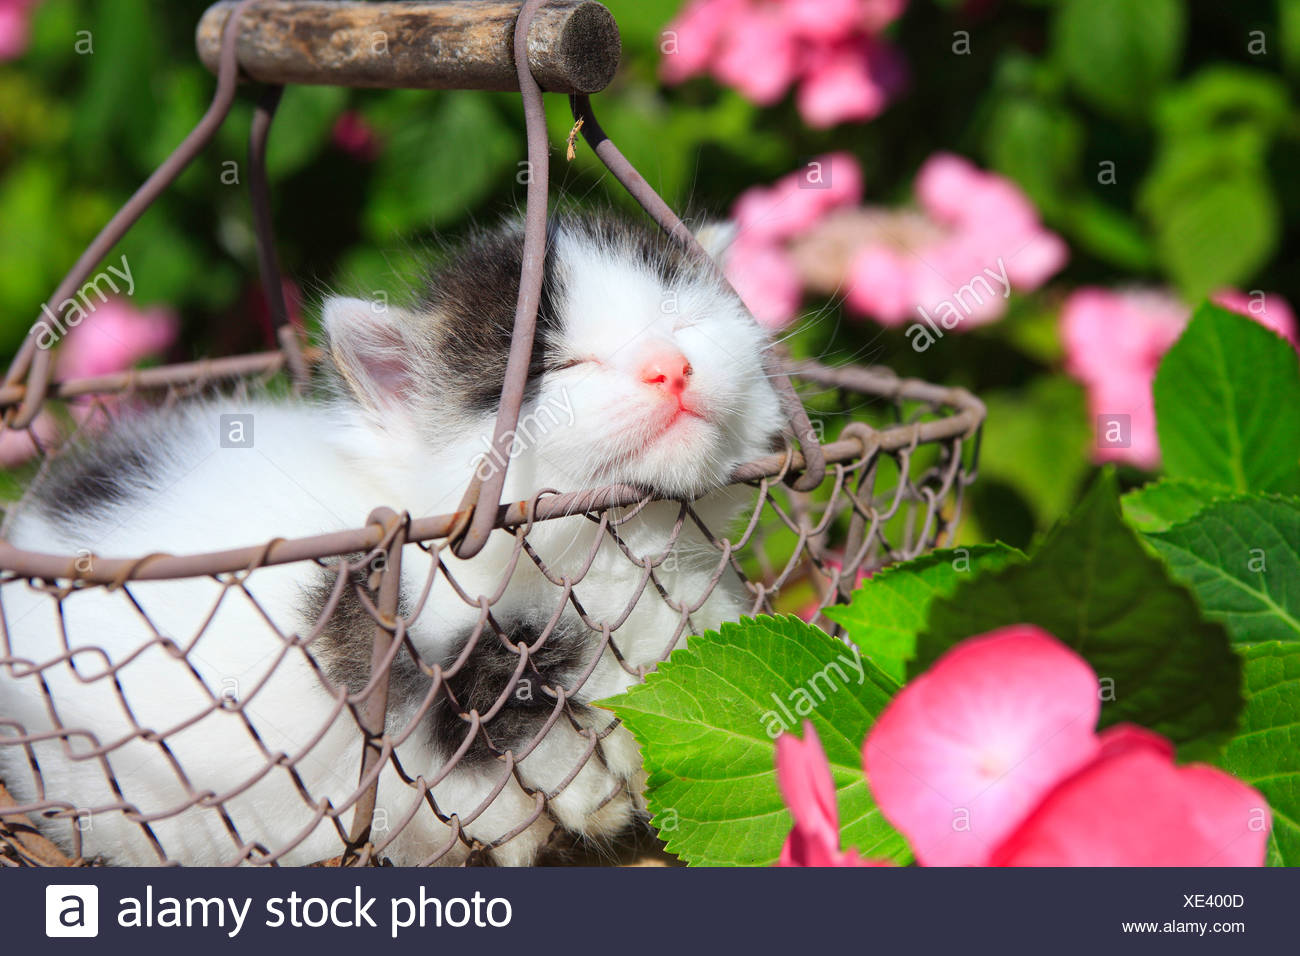 3 weeks, flower, flowers, garden, house, home, Animal, domestic animal, pet, young, cat, basket, kitten, baskets, tiredness, sle - Stock Image